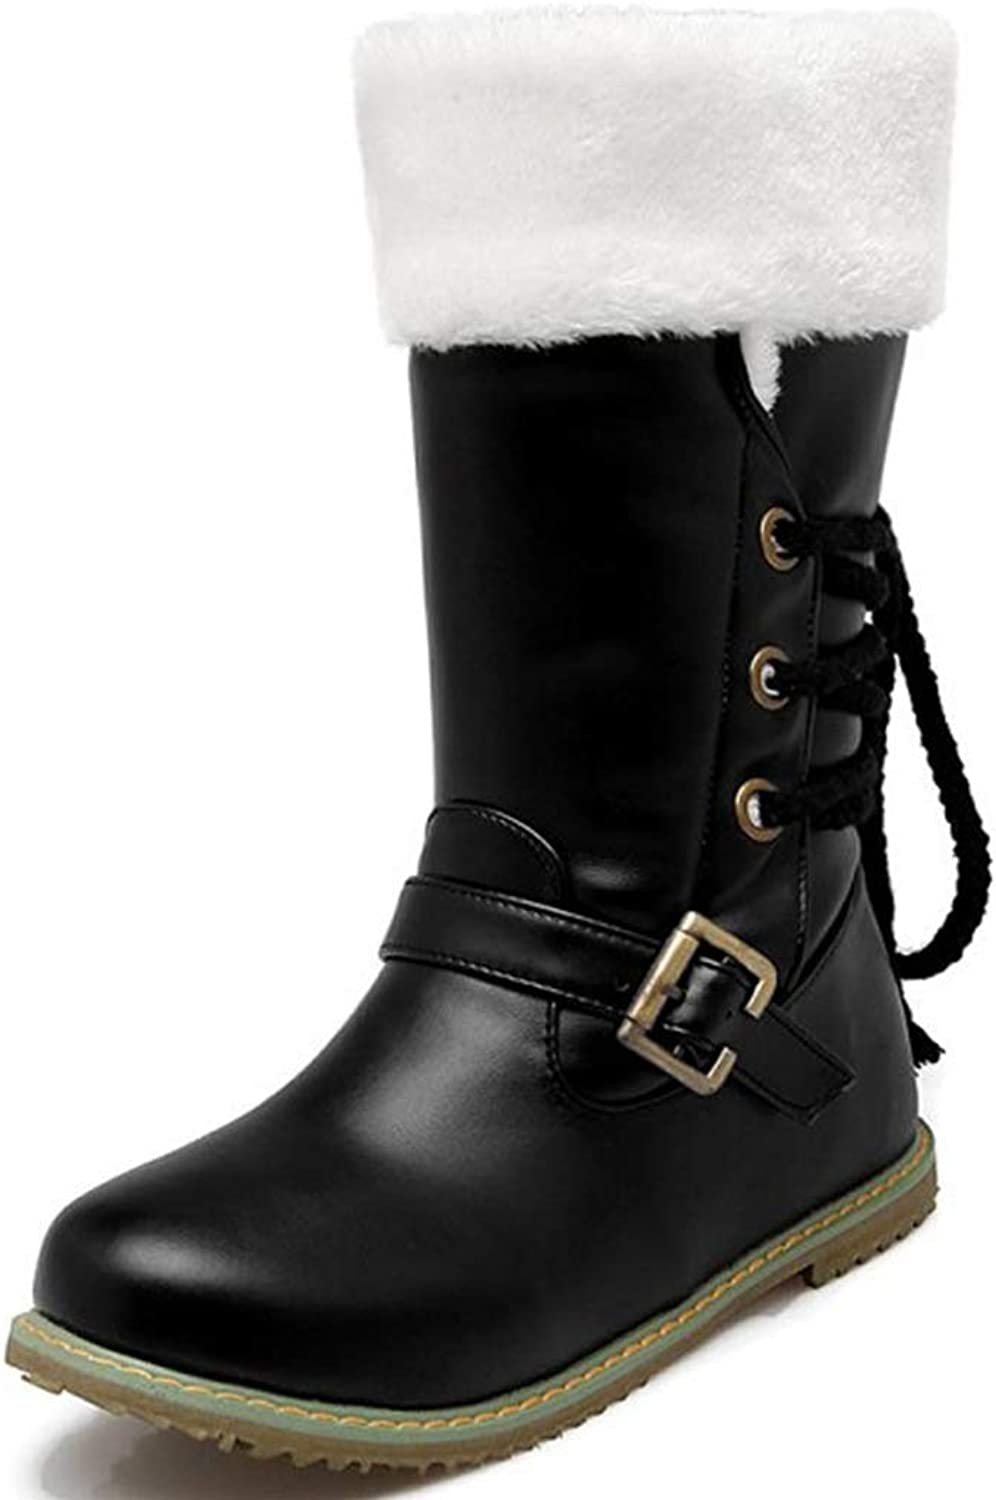 Fashion shoesbox Women's Lace Up Mid-Calf Boots Buckle Warm Fur Lined Wide Calf Flat Heel Outdoor Anti-Slip Winter Snow Boots